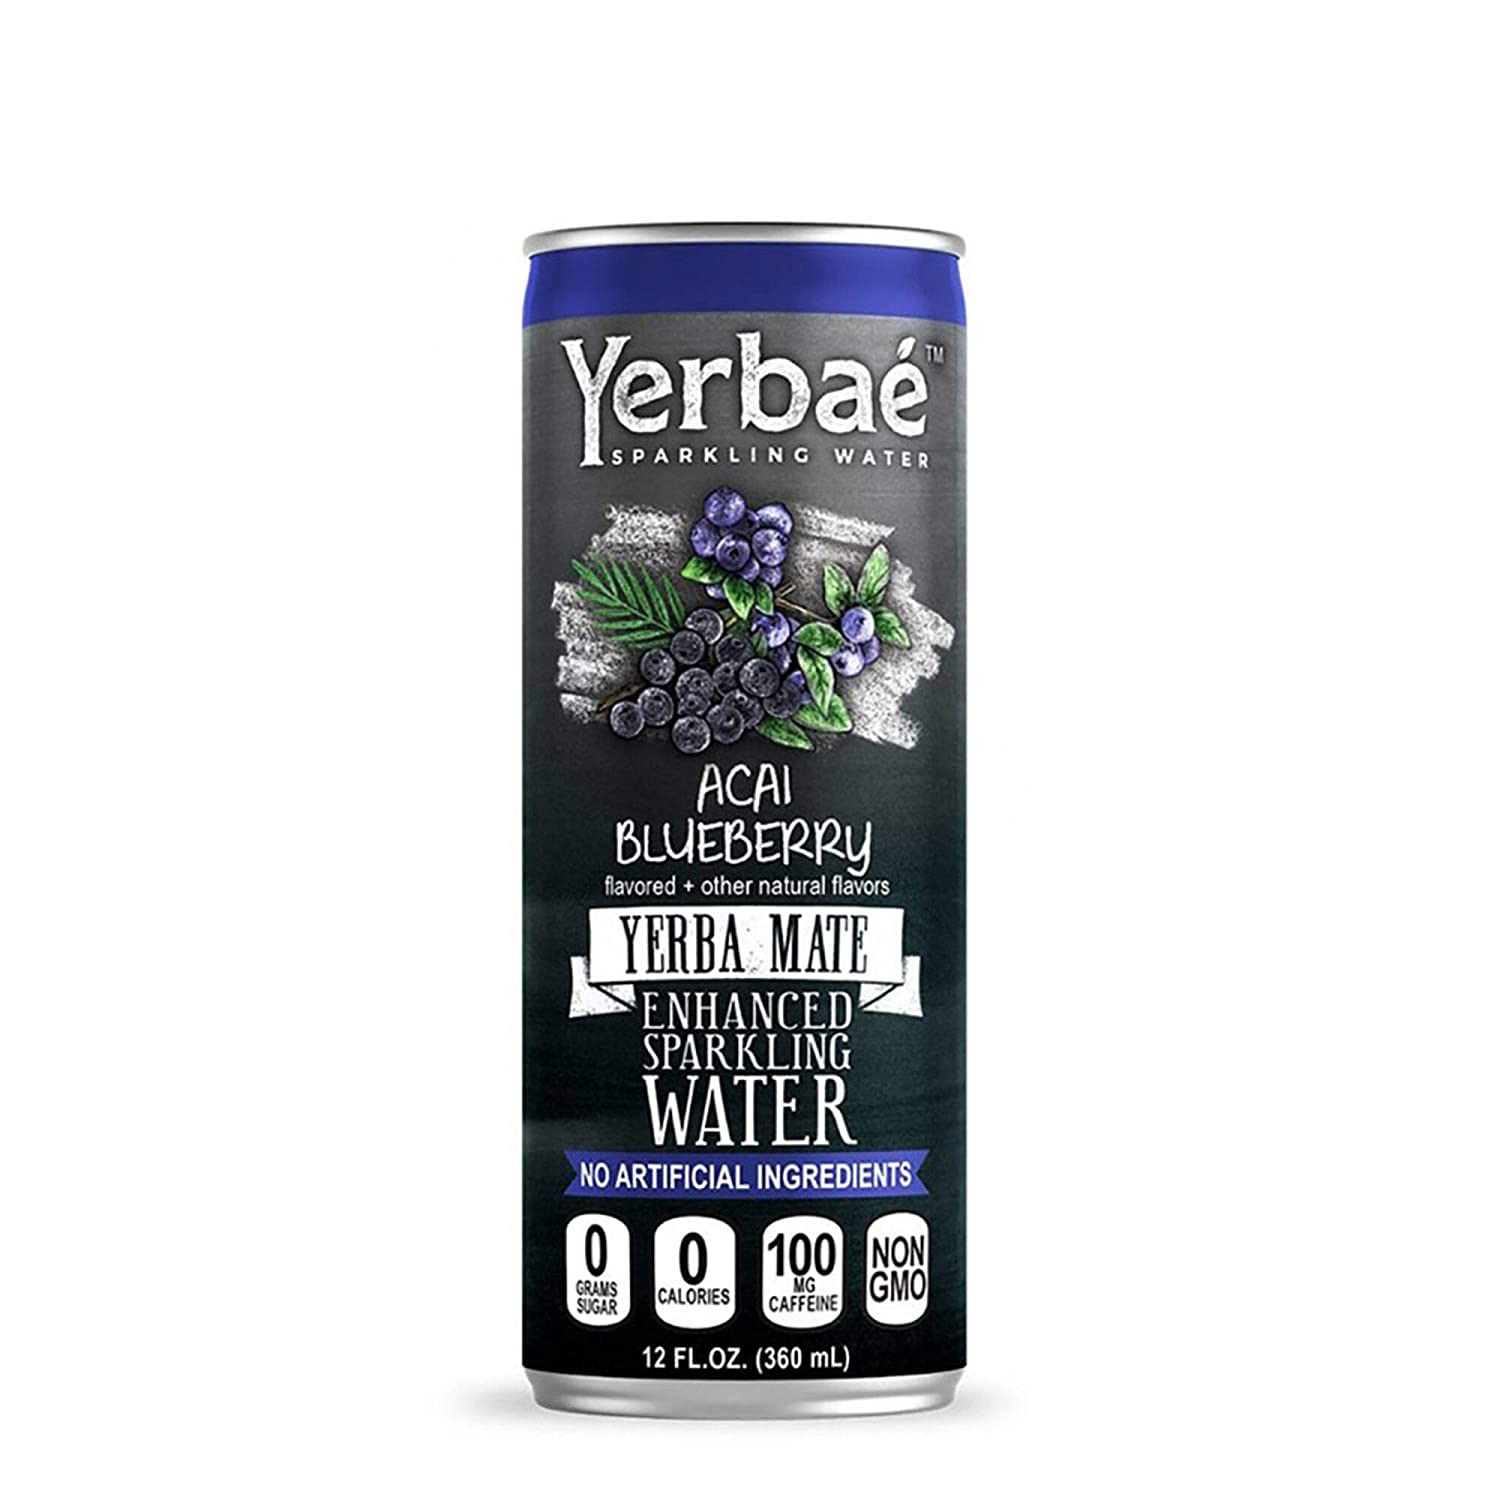 Yerbae Sparkling Water – Acai Blueberry Fruit Flavored Seltzer with Caffeine, Antioxidants, Yerba Mate Natural Energy Drink – 12 Pack of 12oz Cans – Zero Sugar, No Calories, Non-GMO